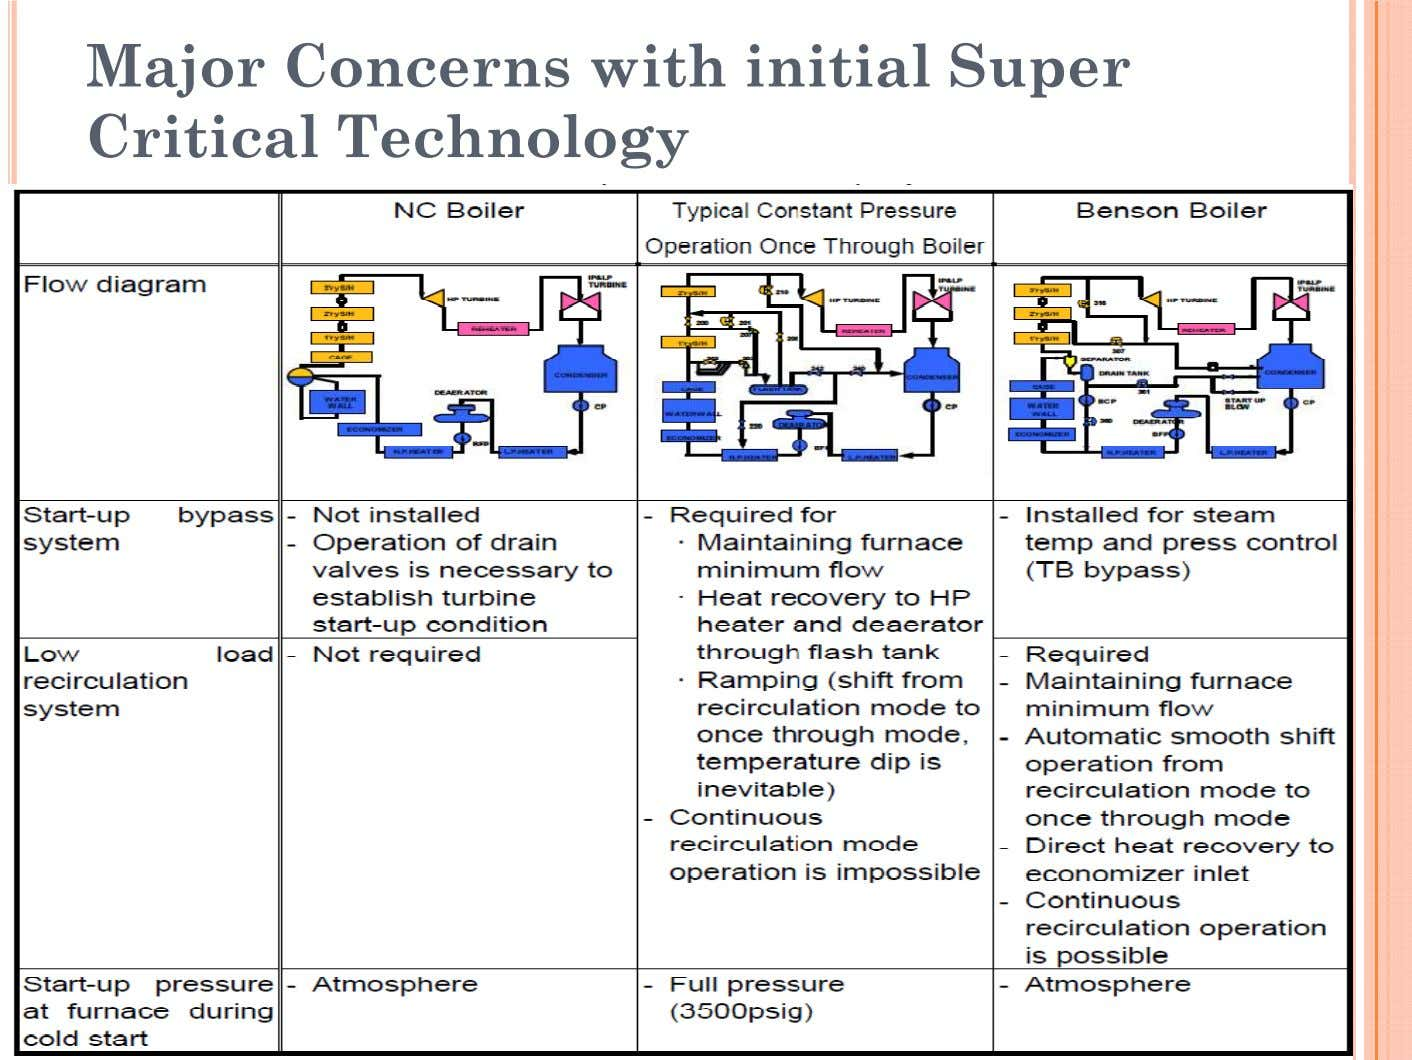 Major Concerns with initial Super Critical Technology